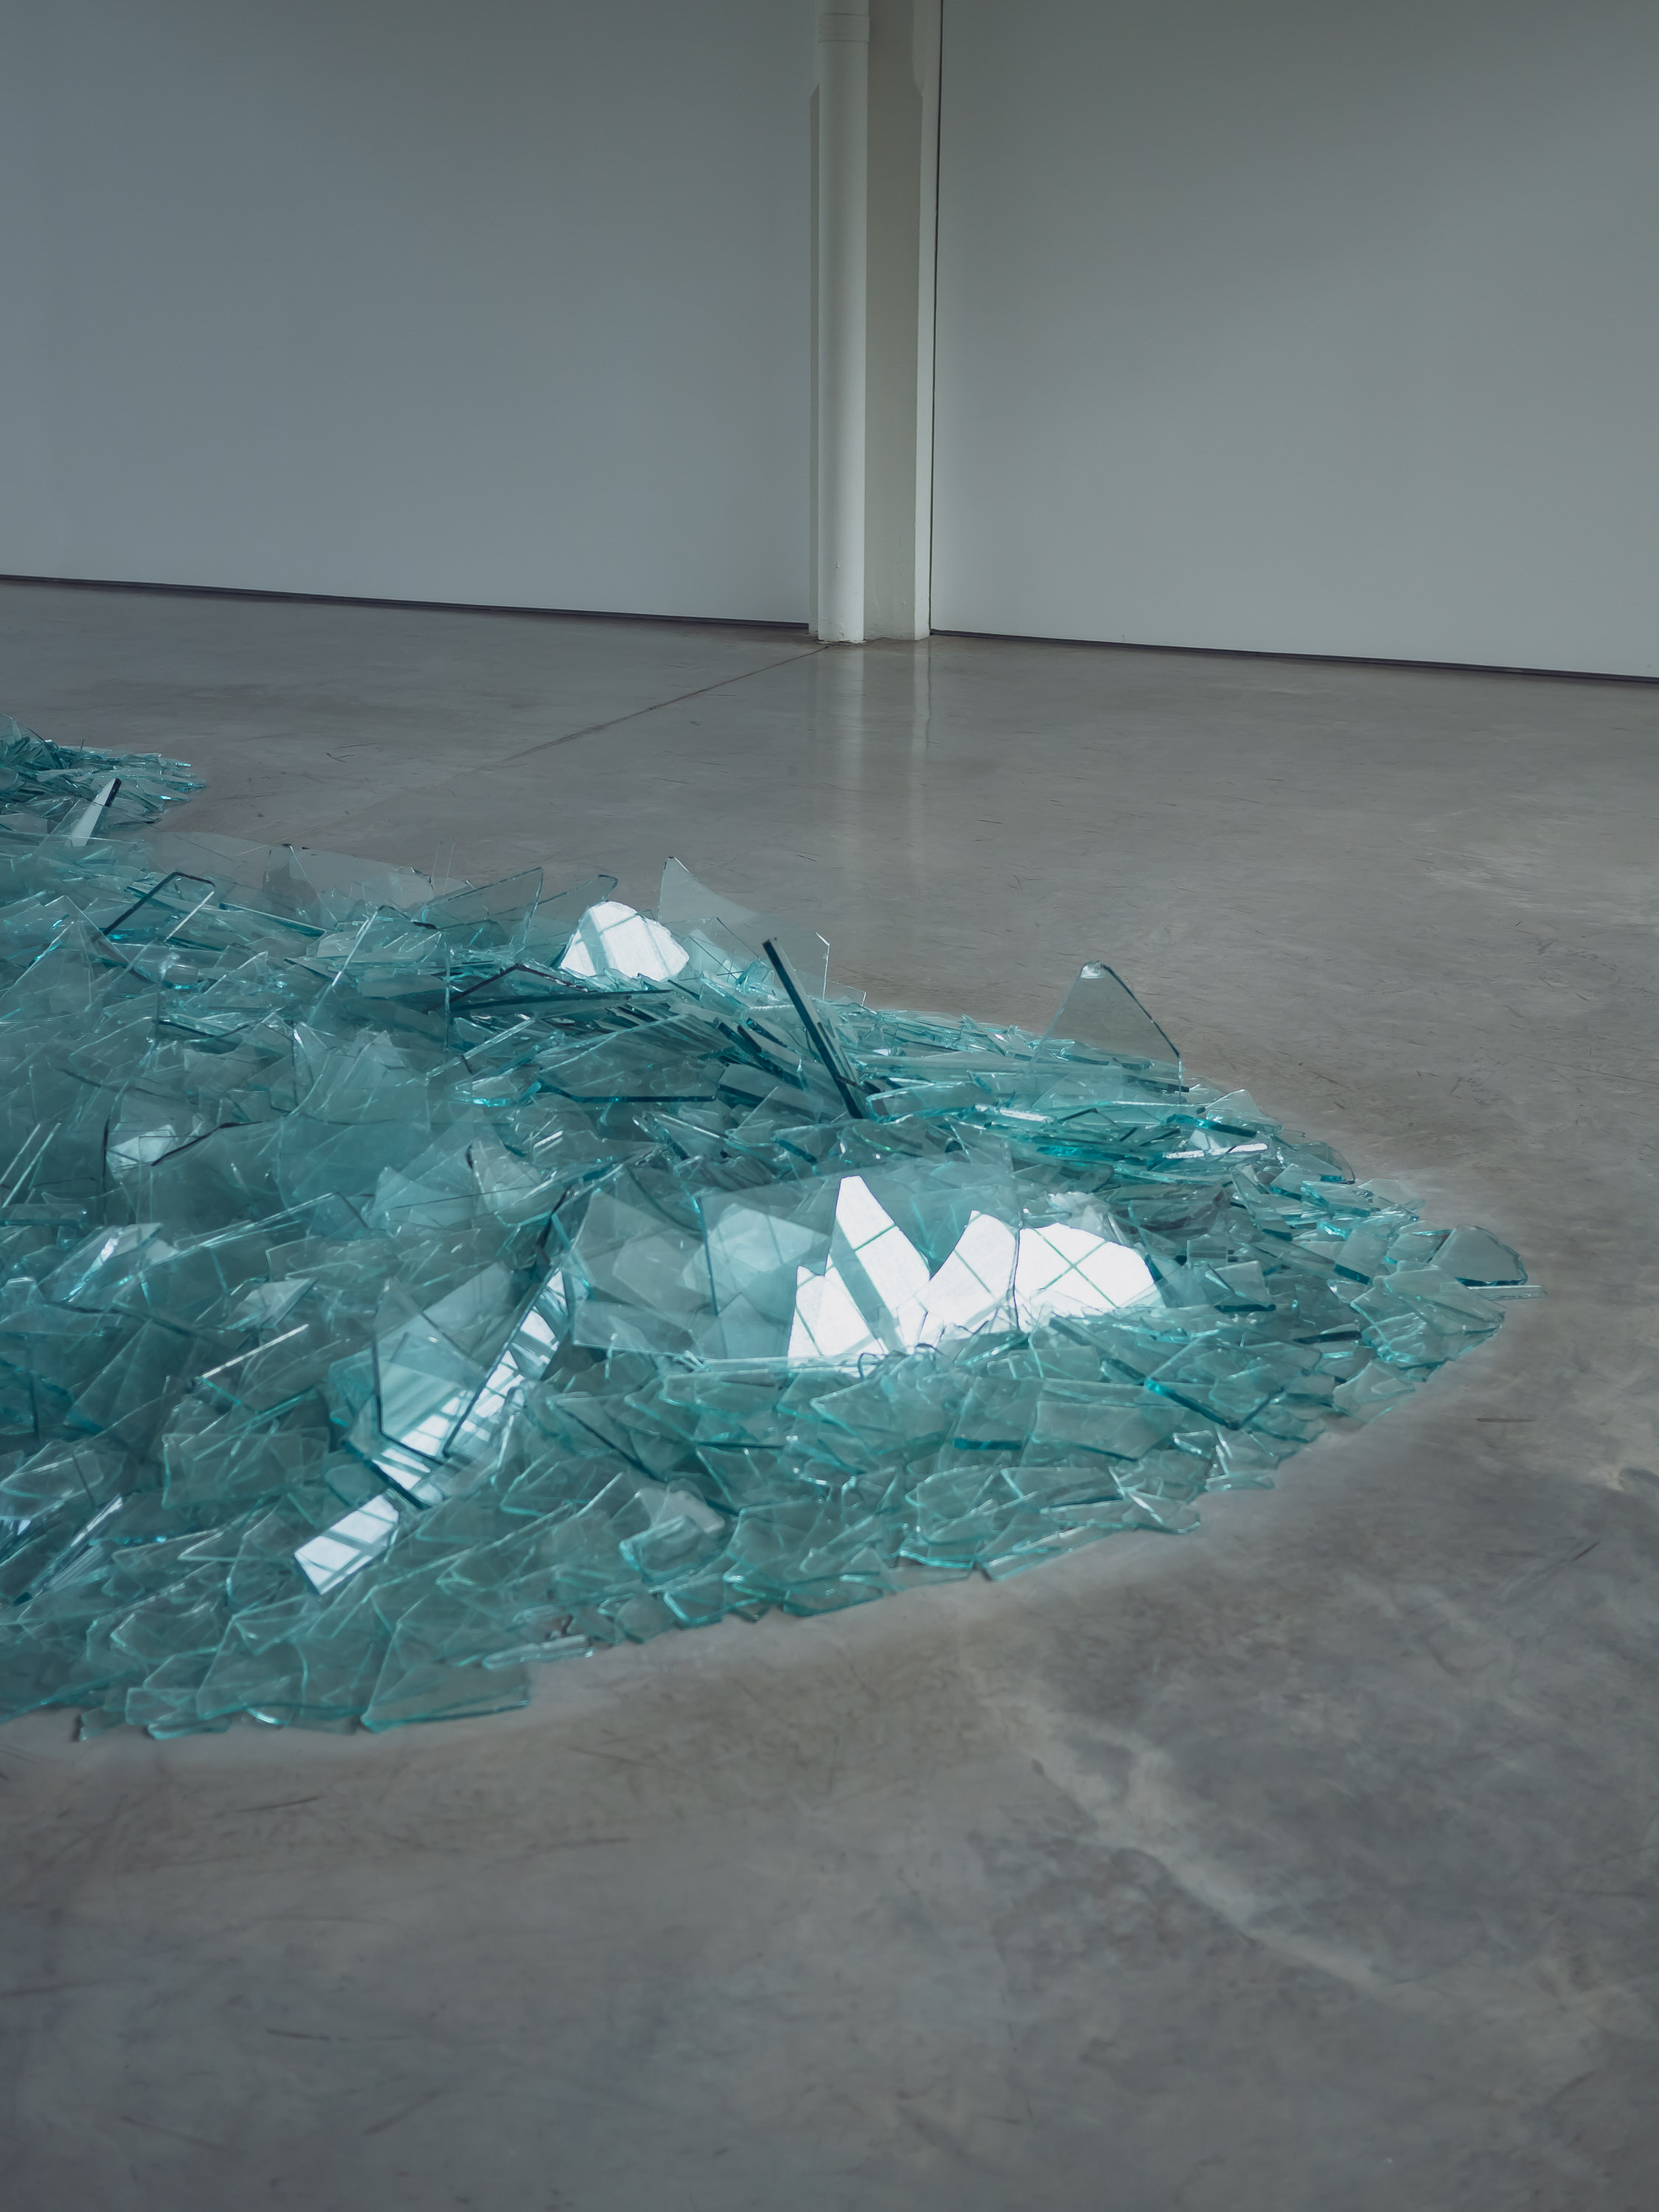 Shards of glass. By Robert Smithson.